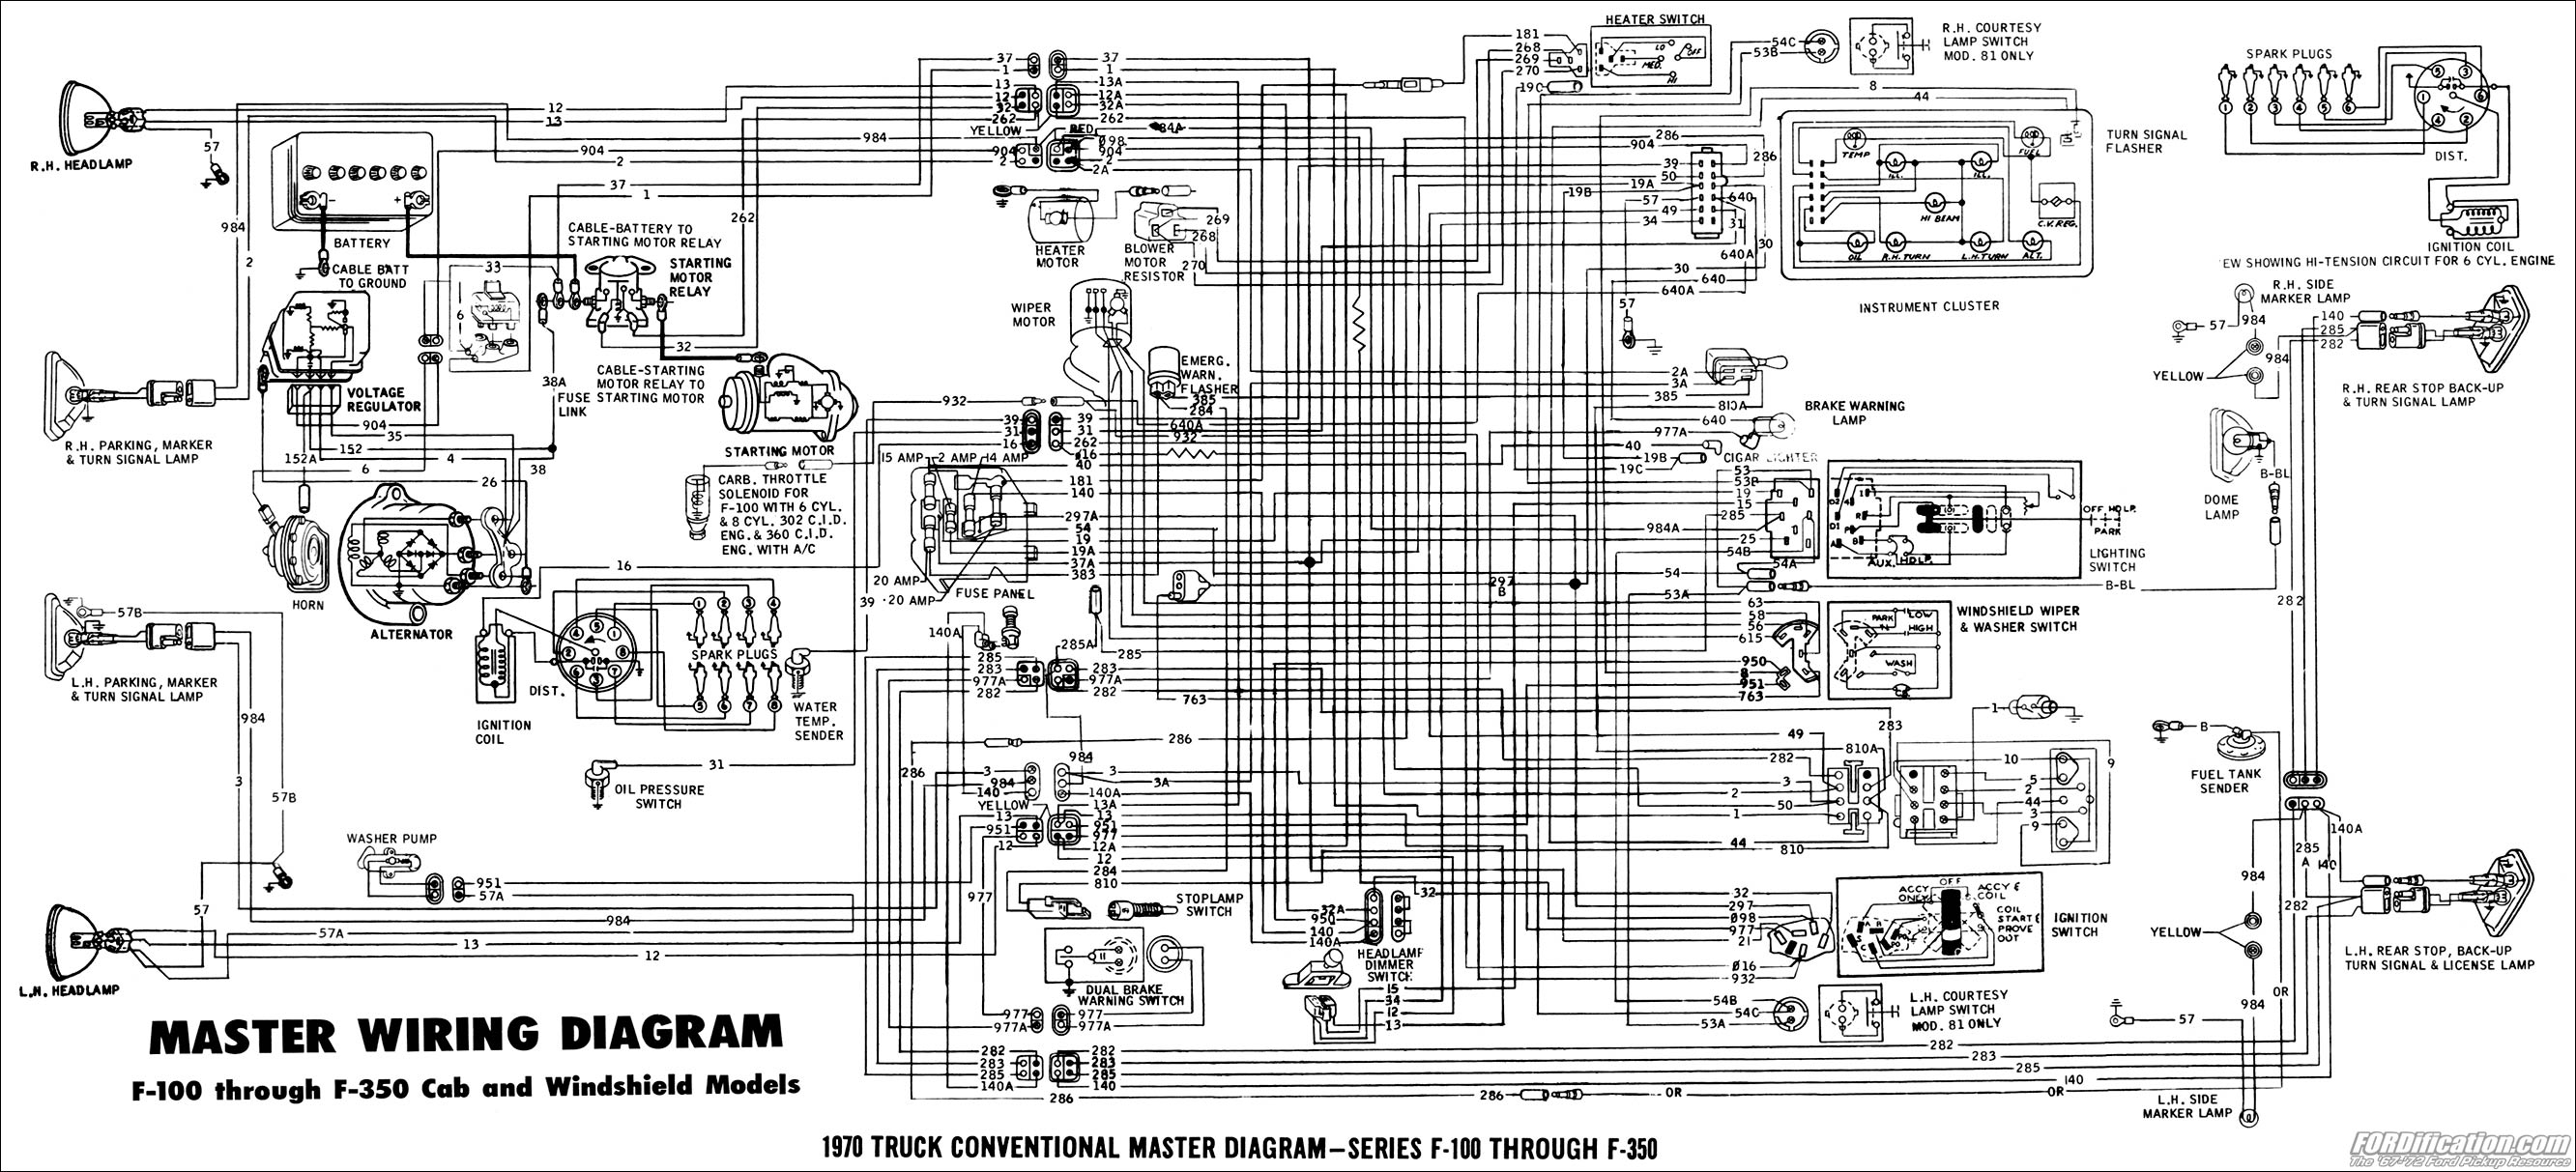 p096 remote start wiring turcolea com s2000 wiring diagram at soozxer.org